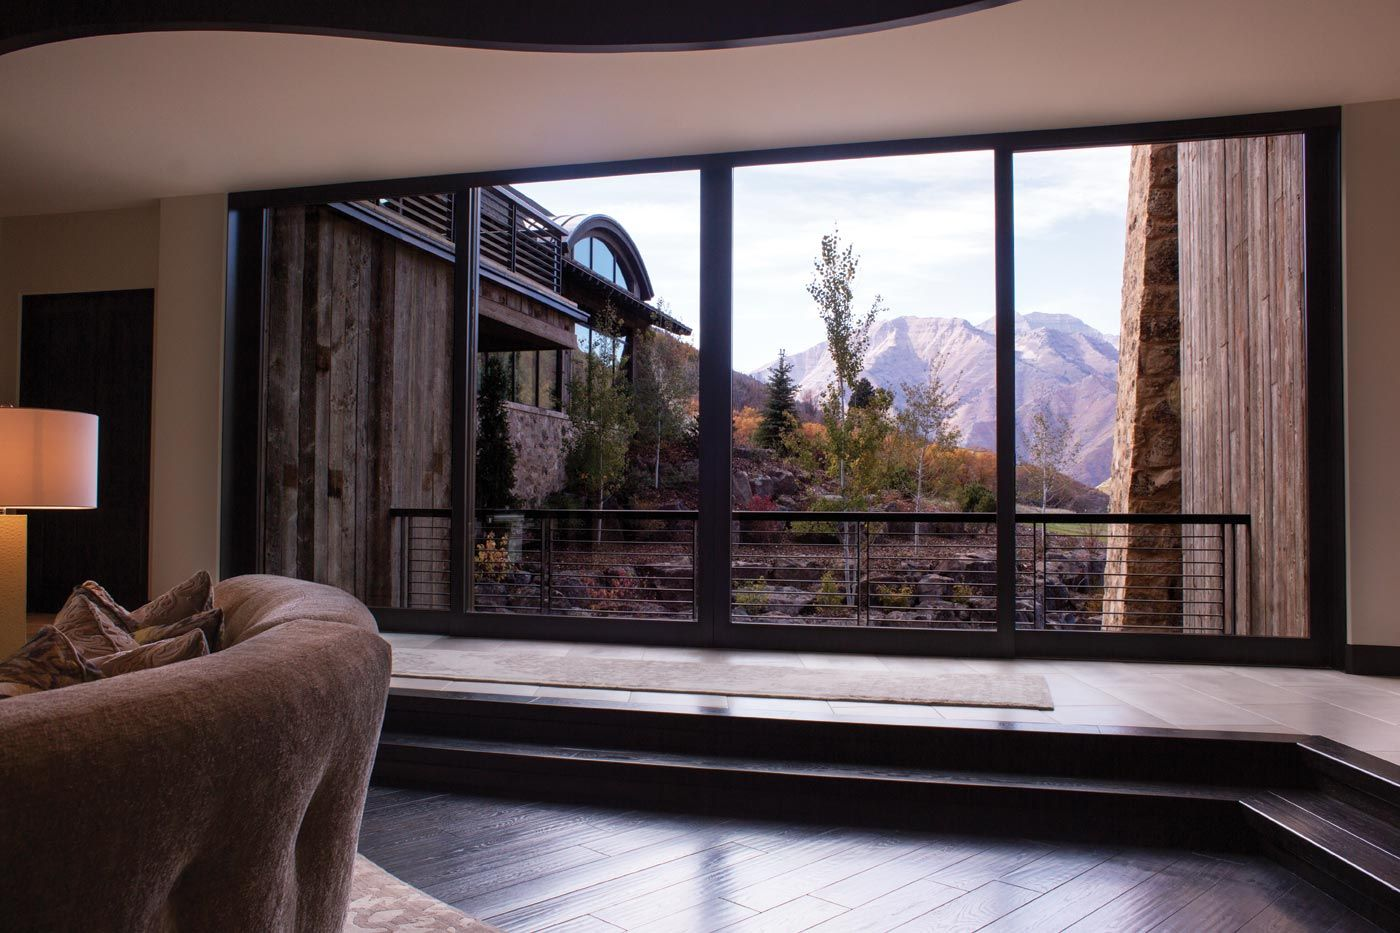 Private Residence Lift And Slide Door With Mountain View By Marvin Windows